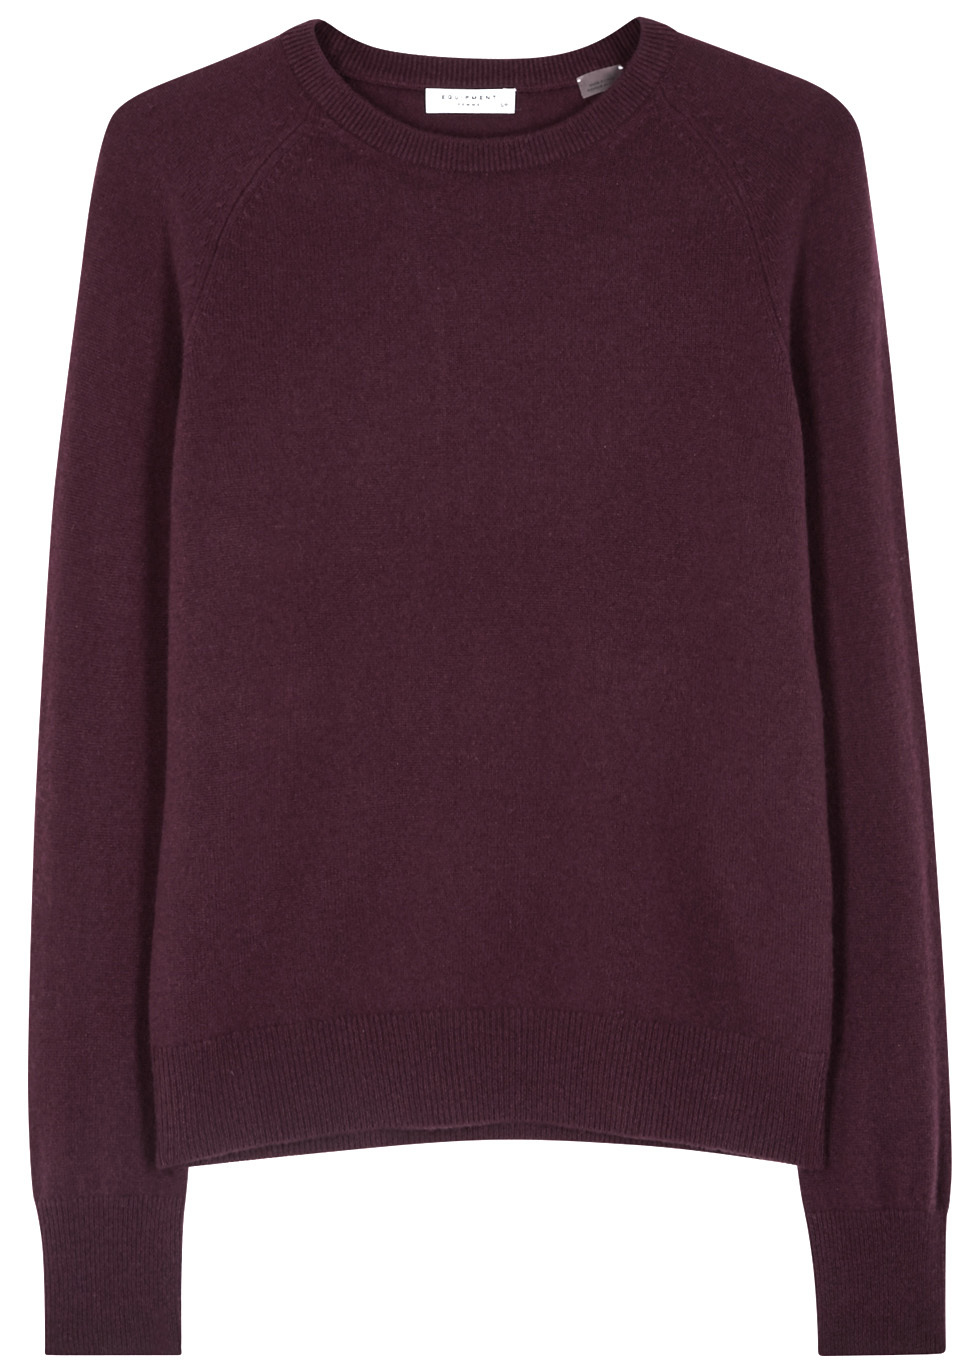 Sloane Merlot Cashmere Jumper - pattern: plain; style: standard; predominant colour: aubergine; occasions: casual; length: standard; fit: standard fit; neckline: crew; fibres: cashmere - 100%; sleeve length: long sleeve; sleeve style: standard; texture group: knits/crochet; pattern type: knitted - fine stitch; season: a/w 2016; wardrobe: highlight